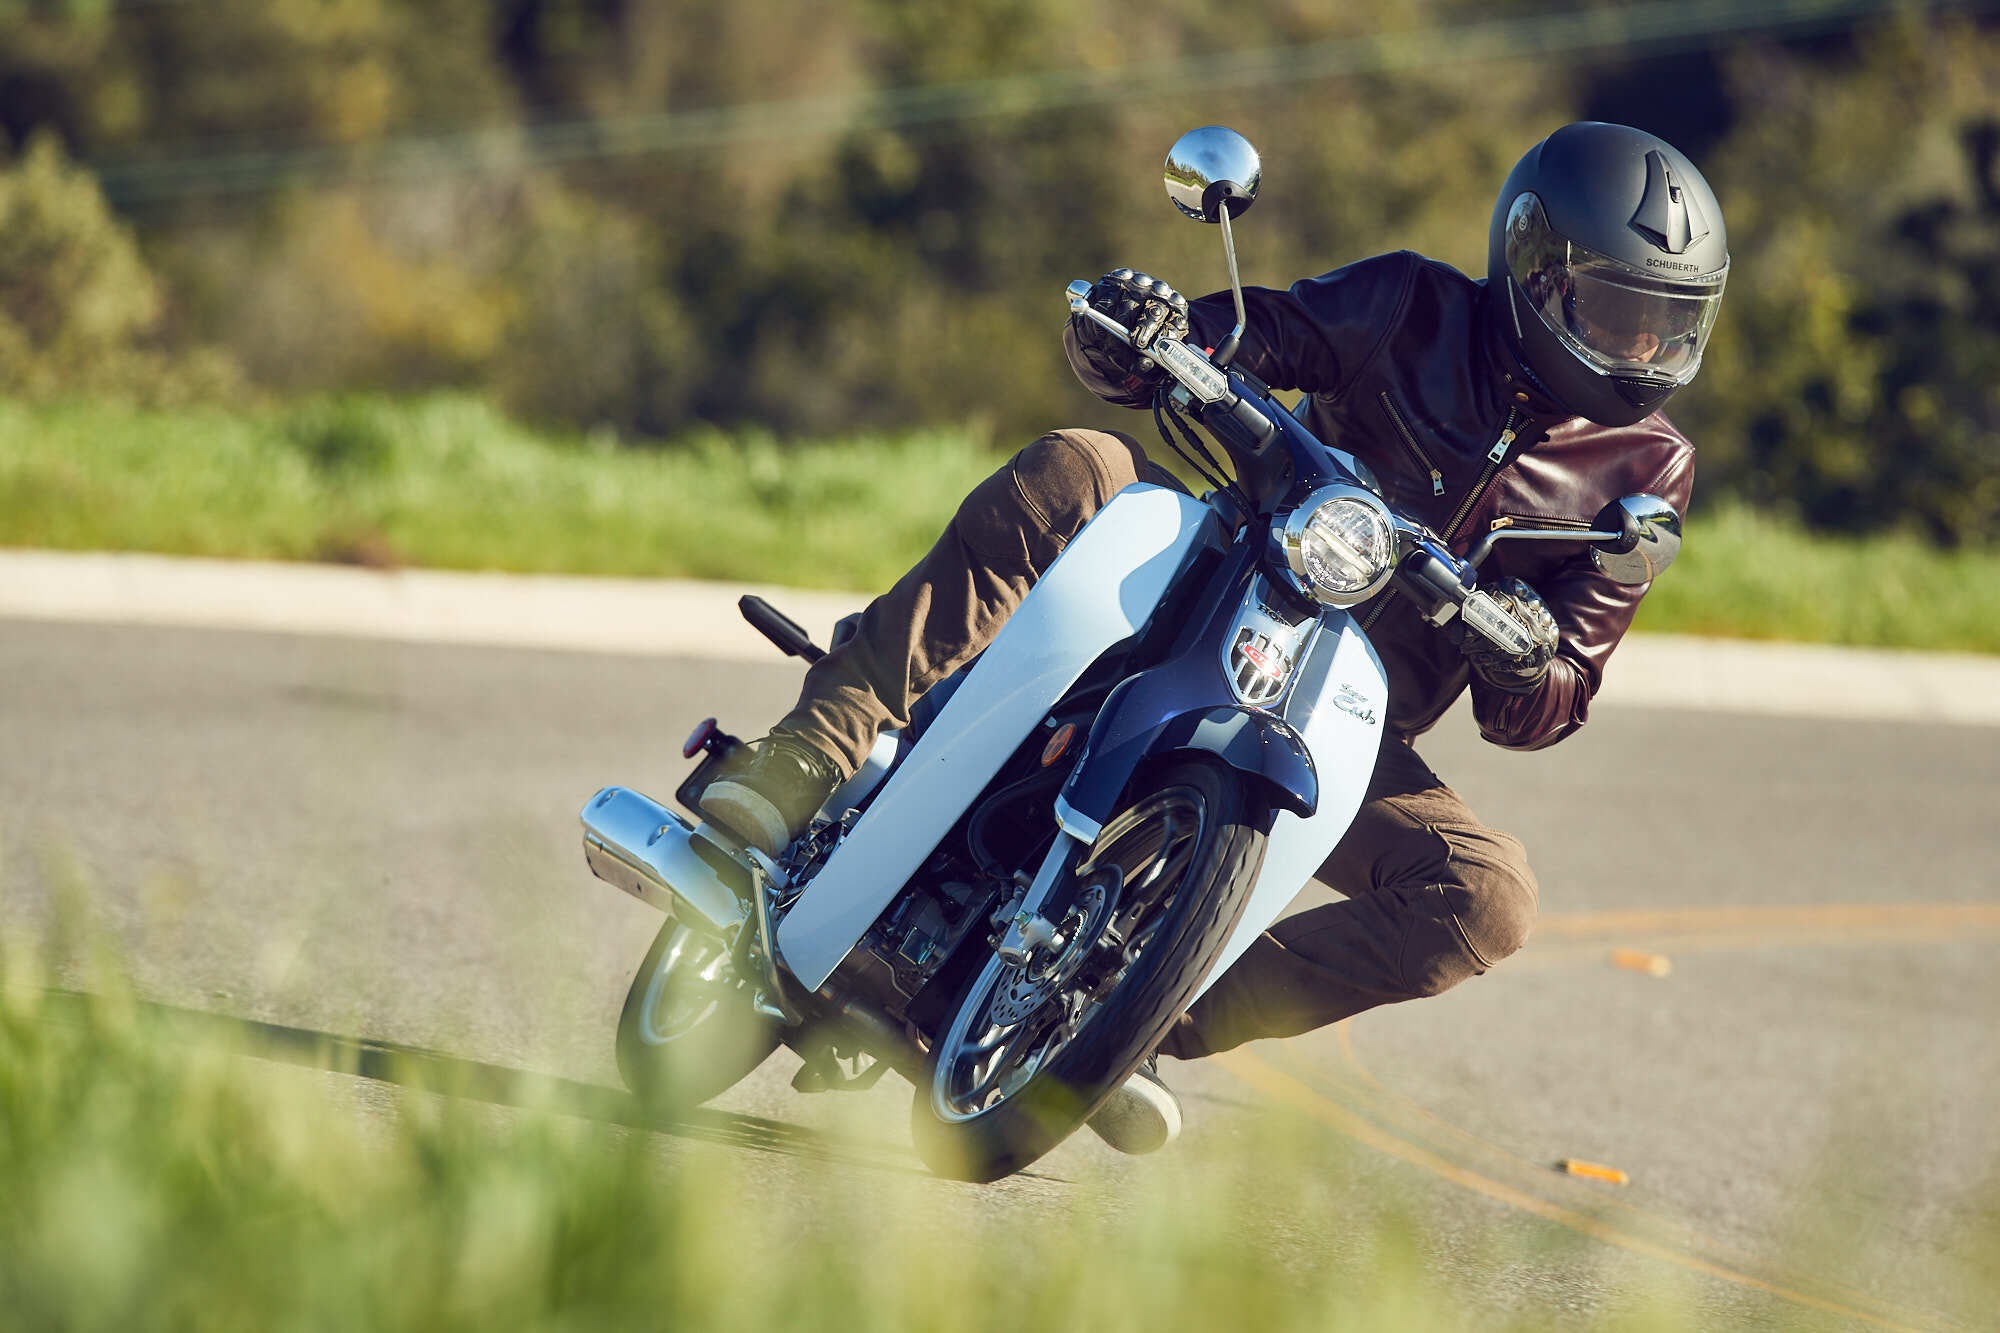 2019 Honda Super Cub motorcycle riding review and information | Autoblog